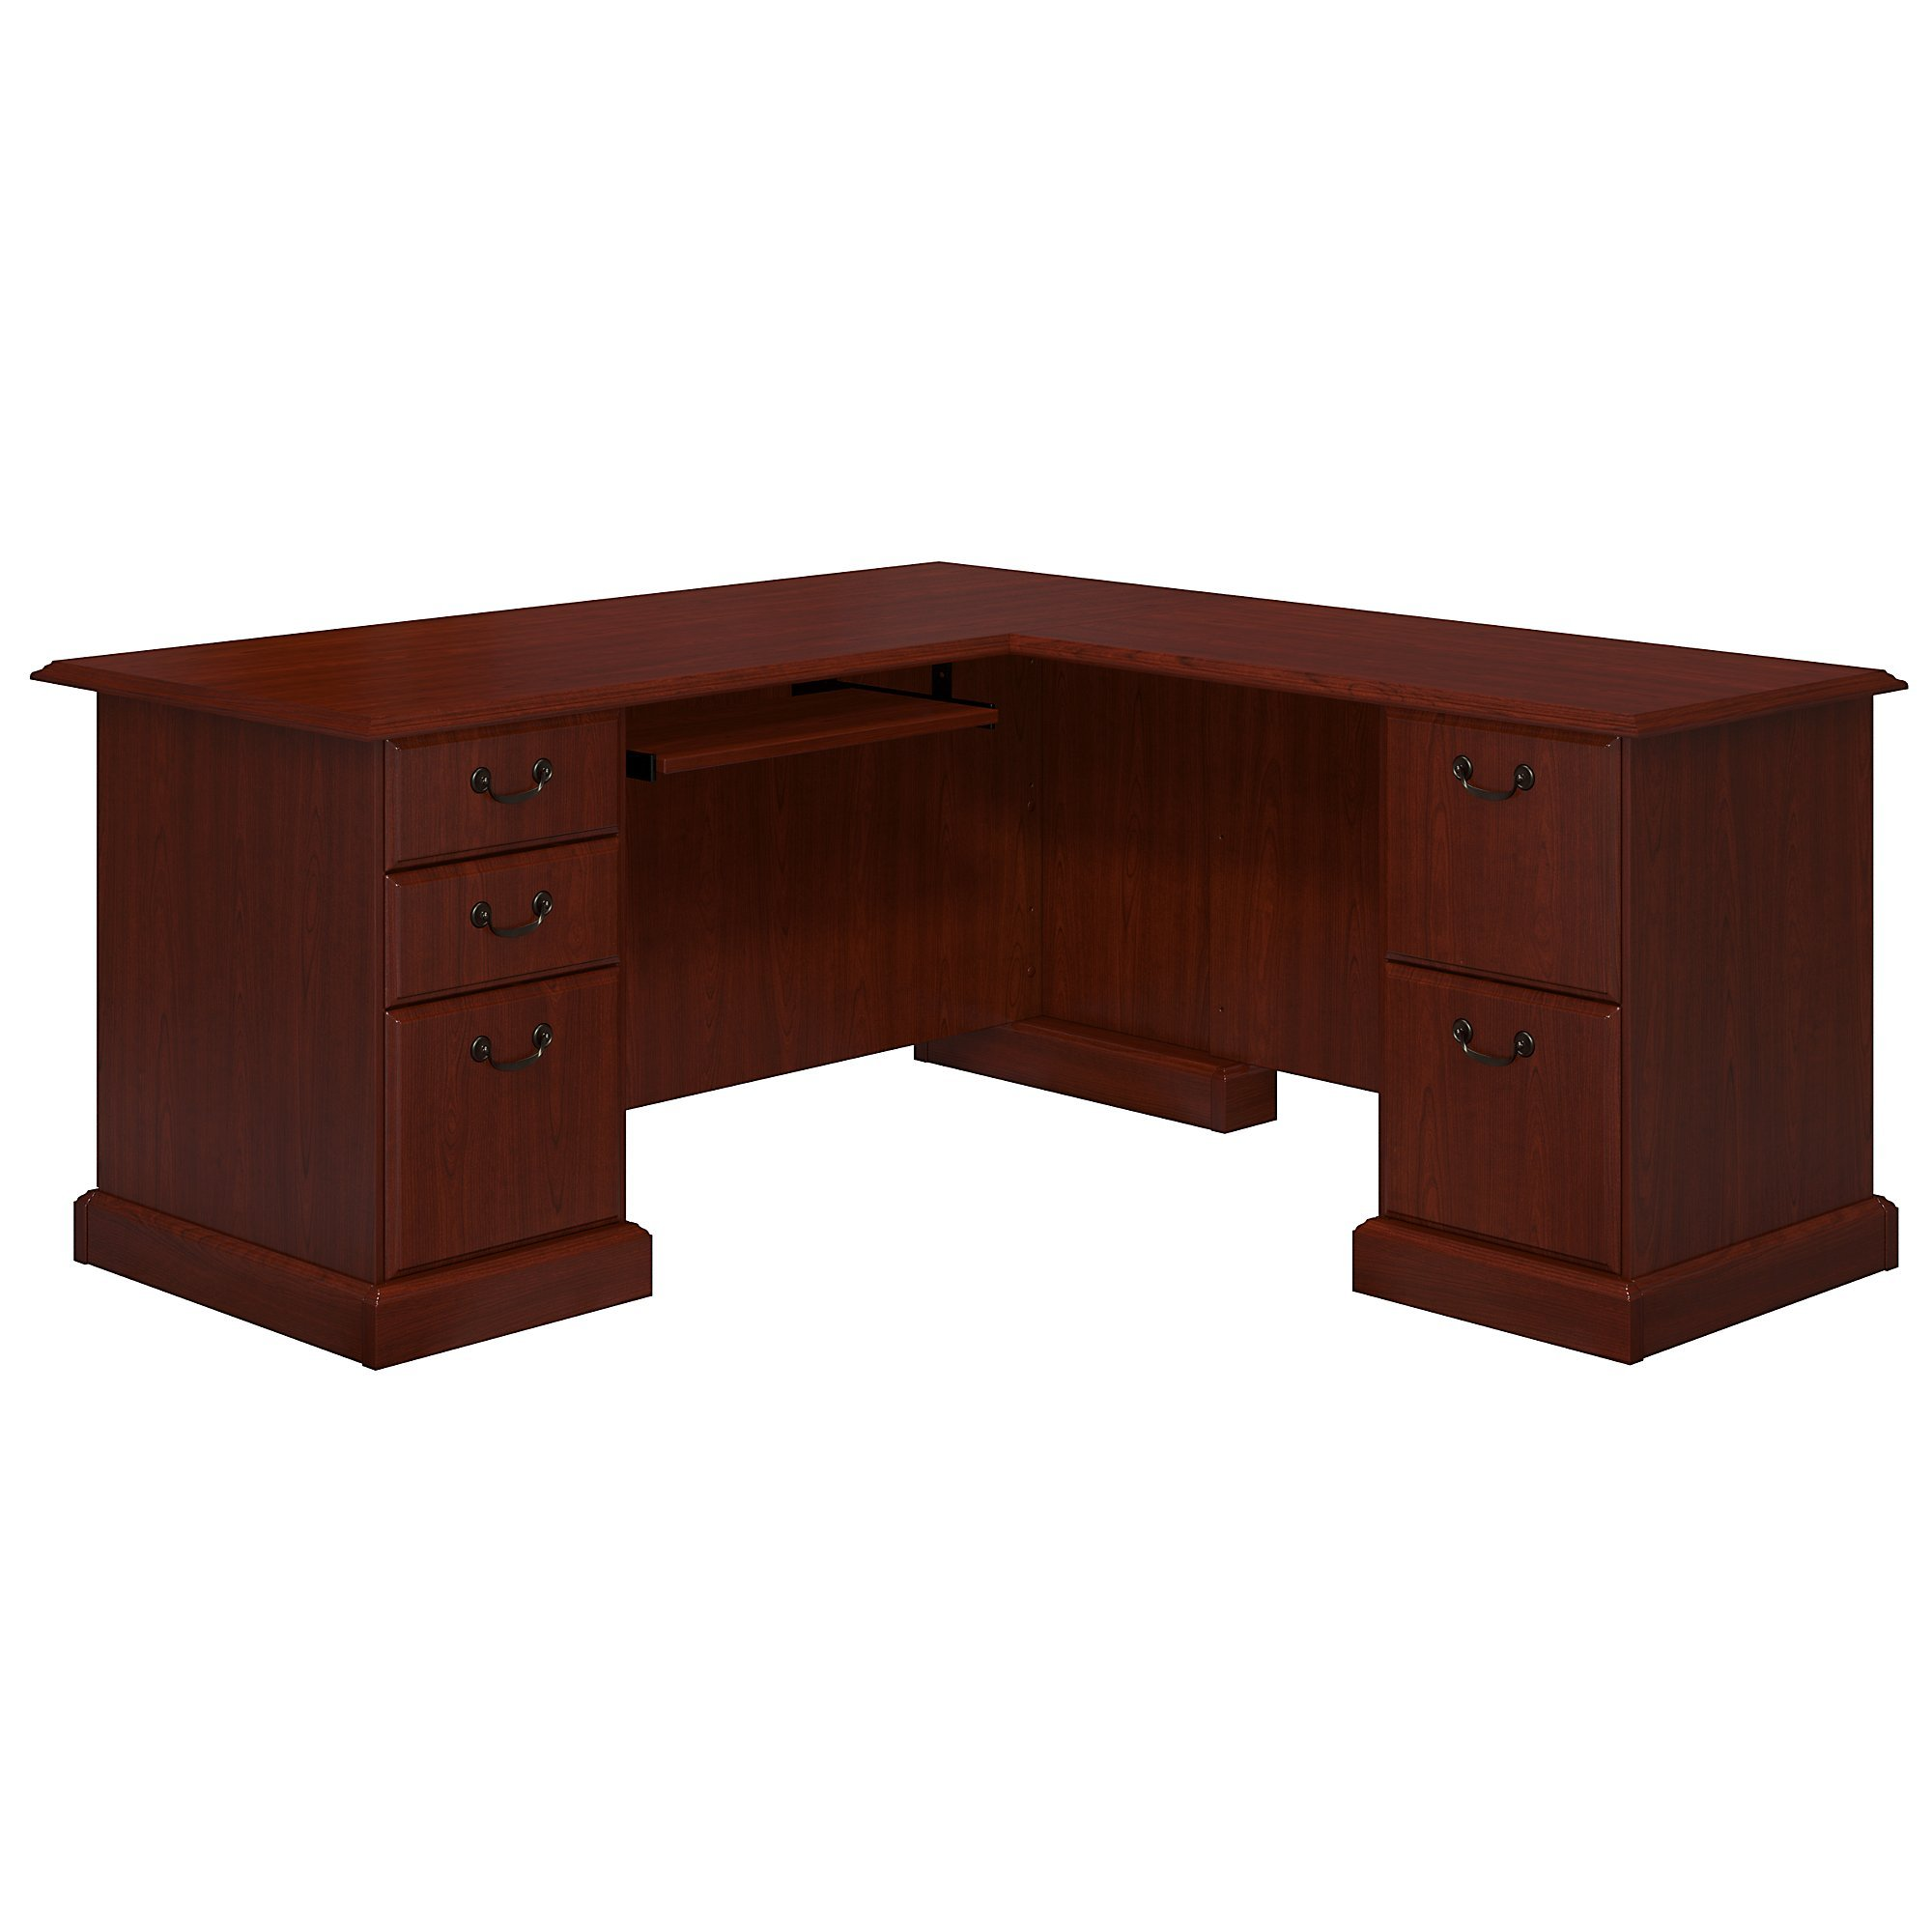 kathy ireland Office by Bush Furniture Bennington L Shaped Desk with Drawers in Harvest Cherry by kathy ireland Home by Bush Furniture (Image #1)